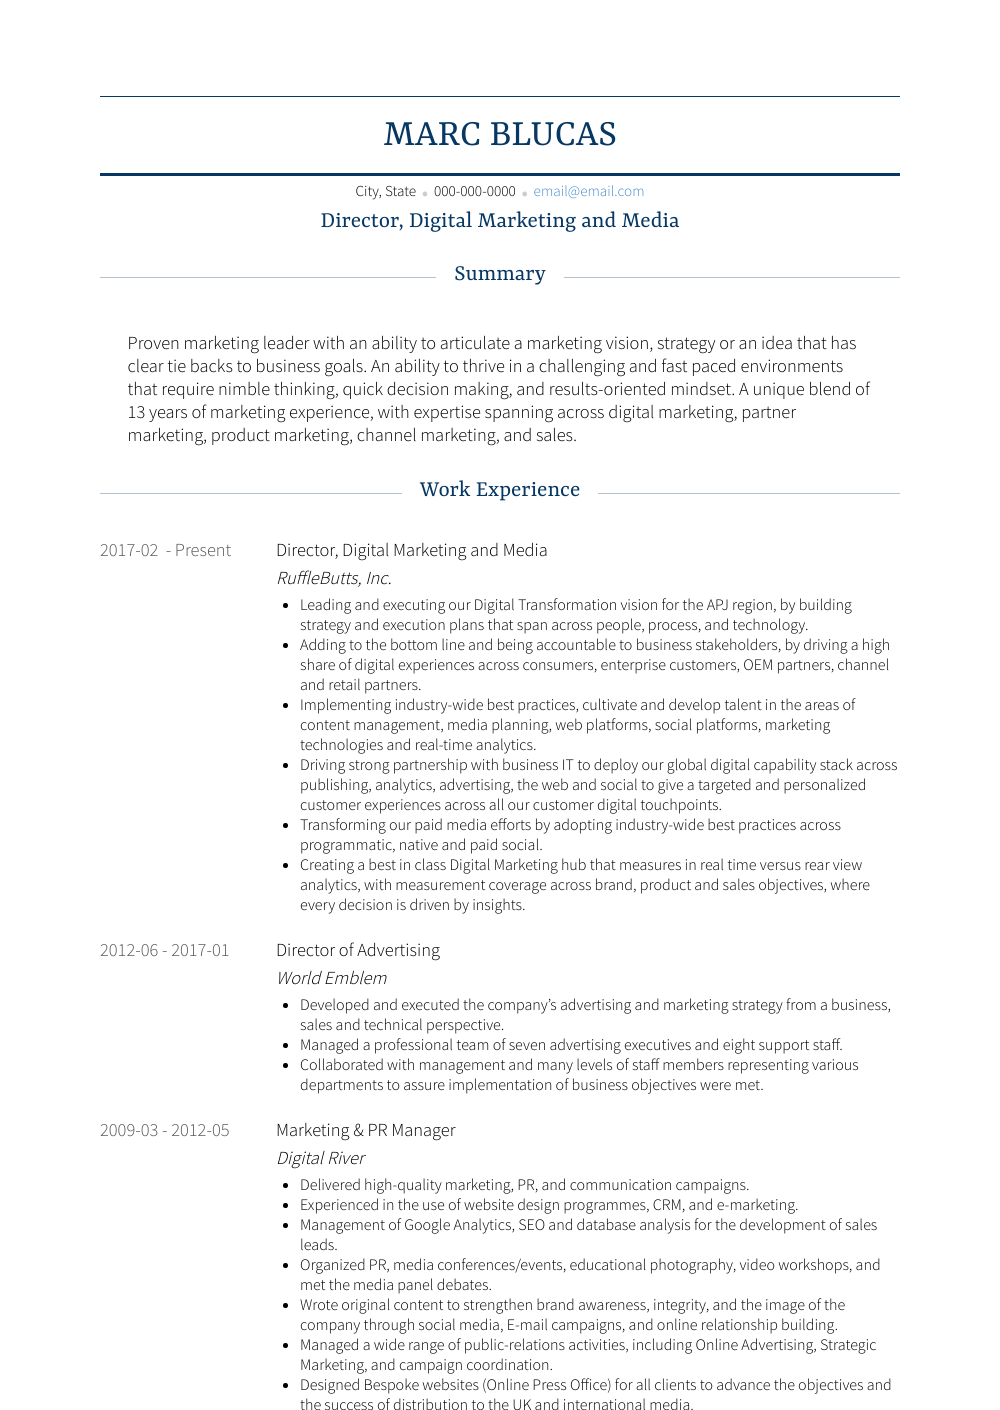 Director, Digital Marketing And Media Resume Sample and Template